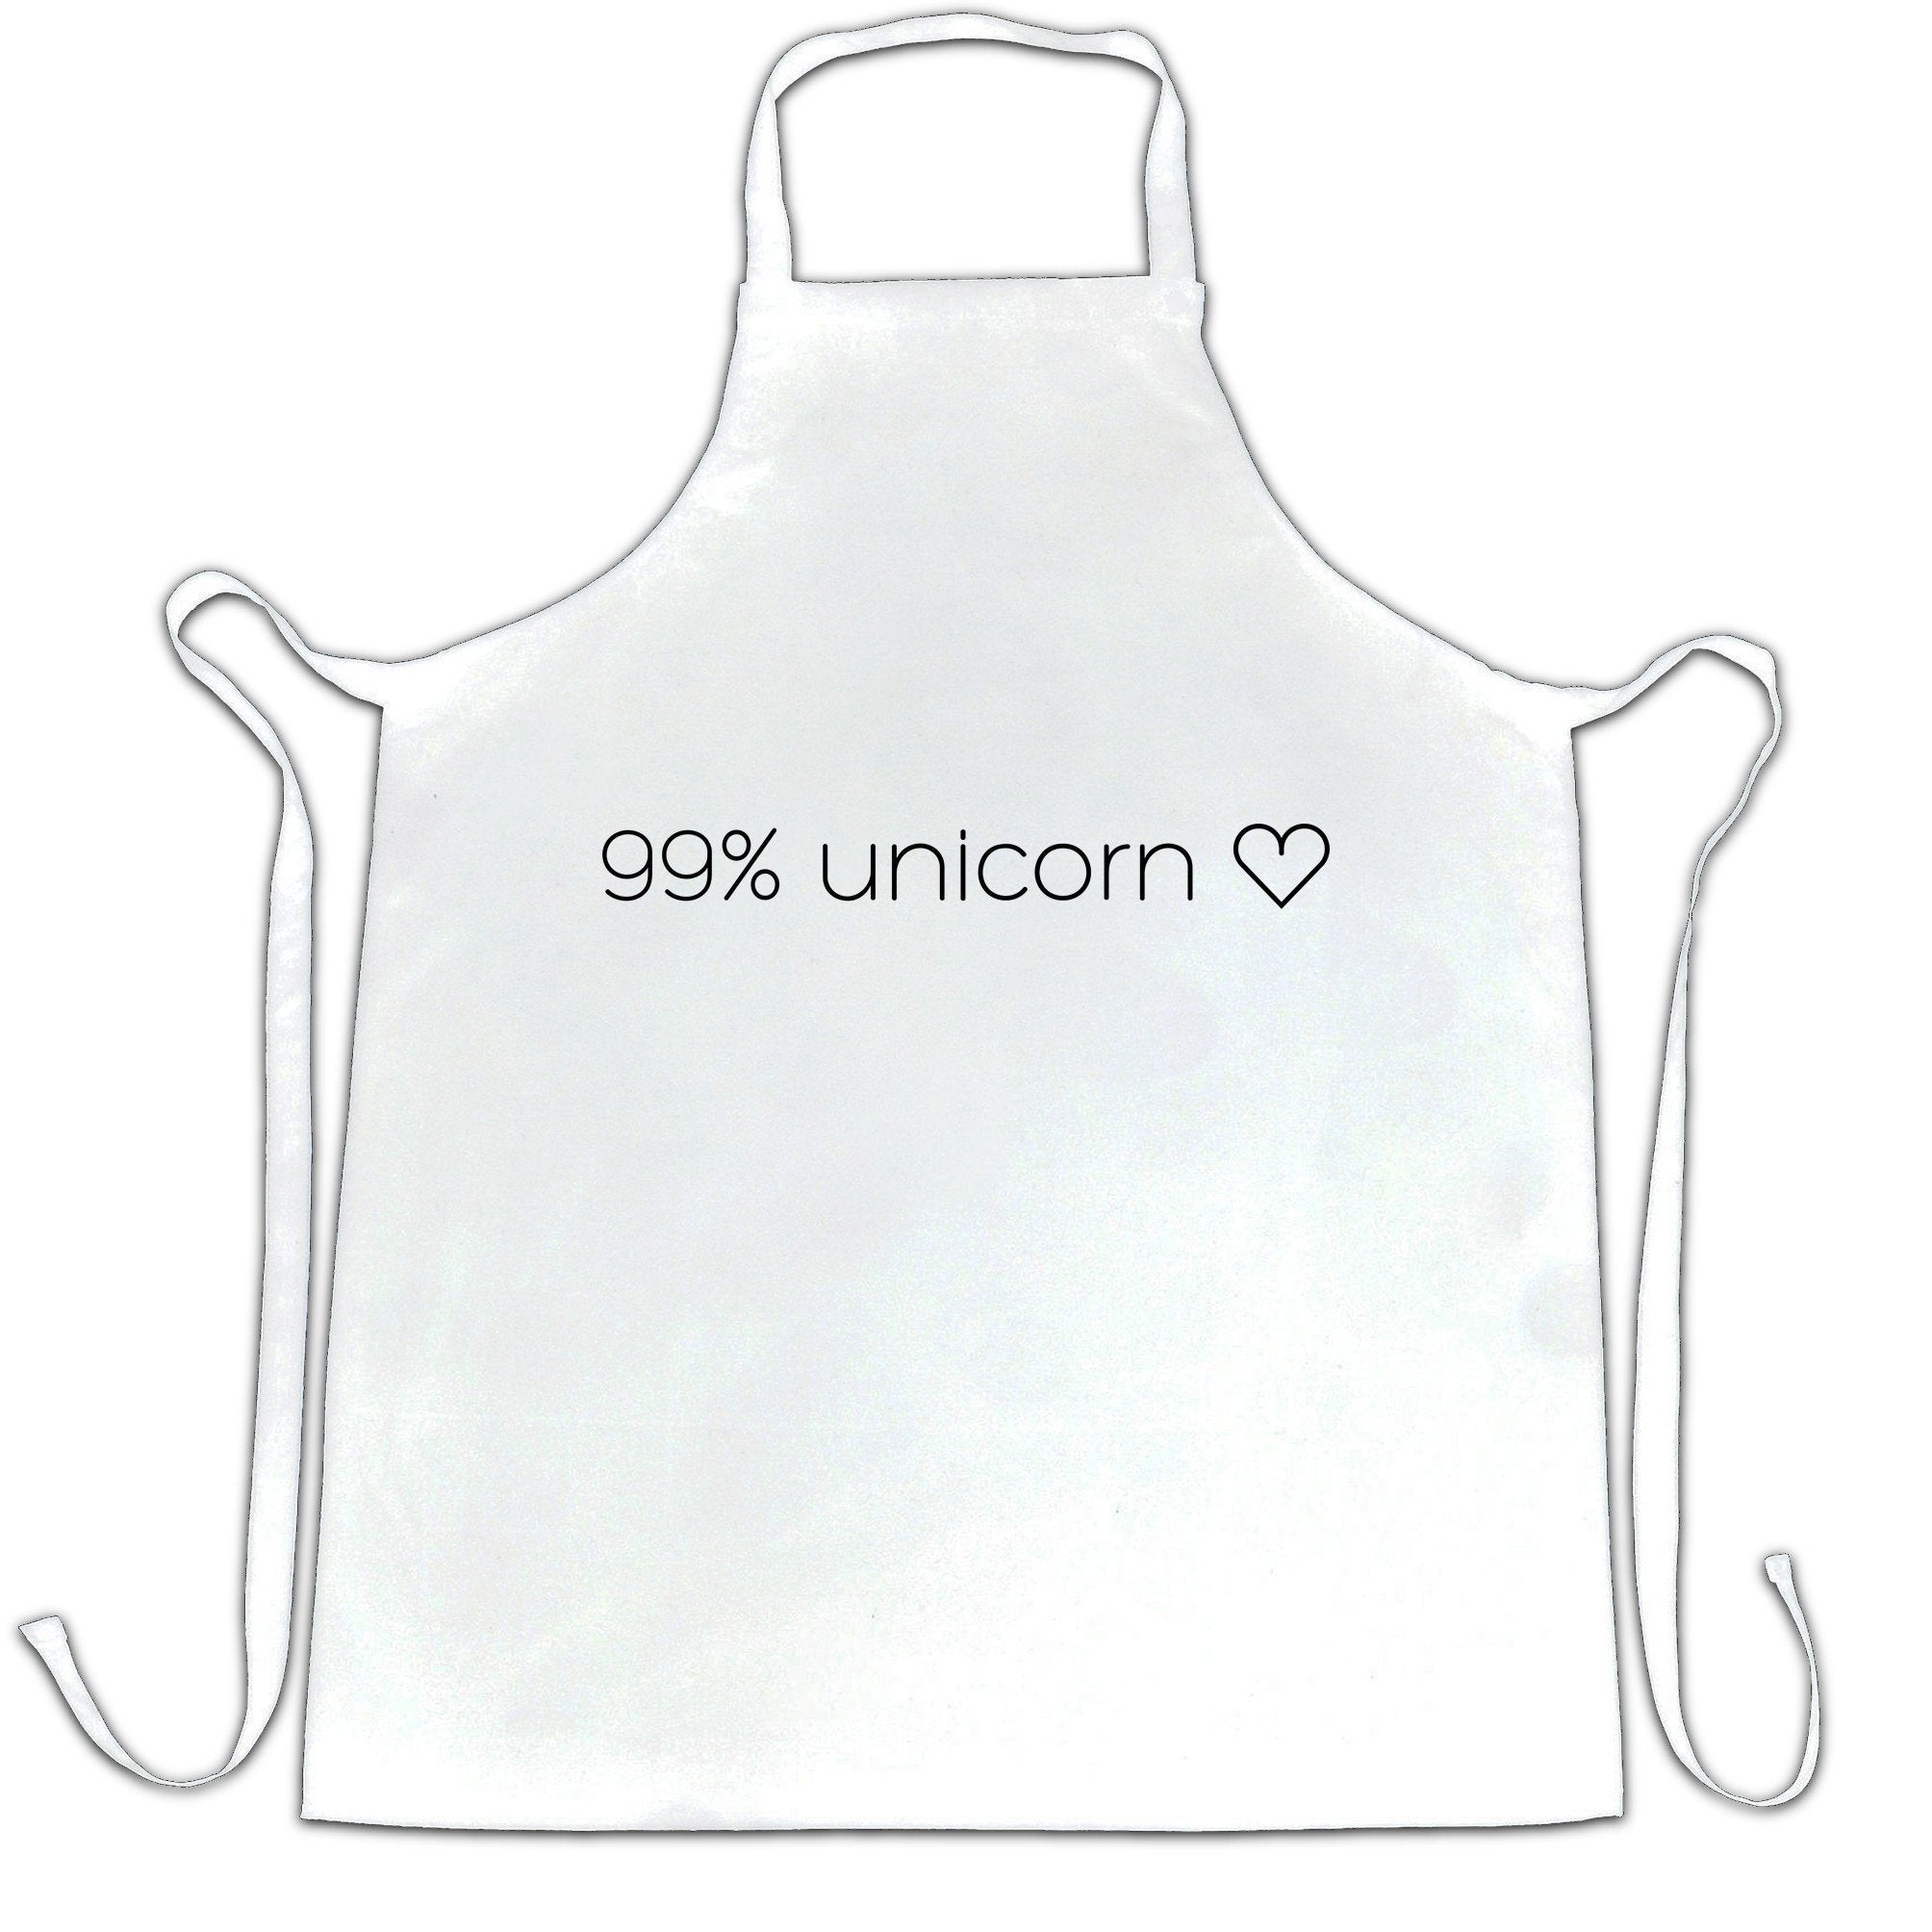 Novelty Mythical Chef's Apron 99% Unicorn Heart Slogan